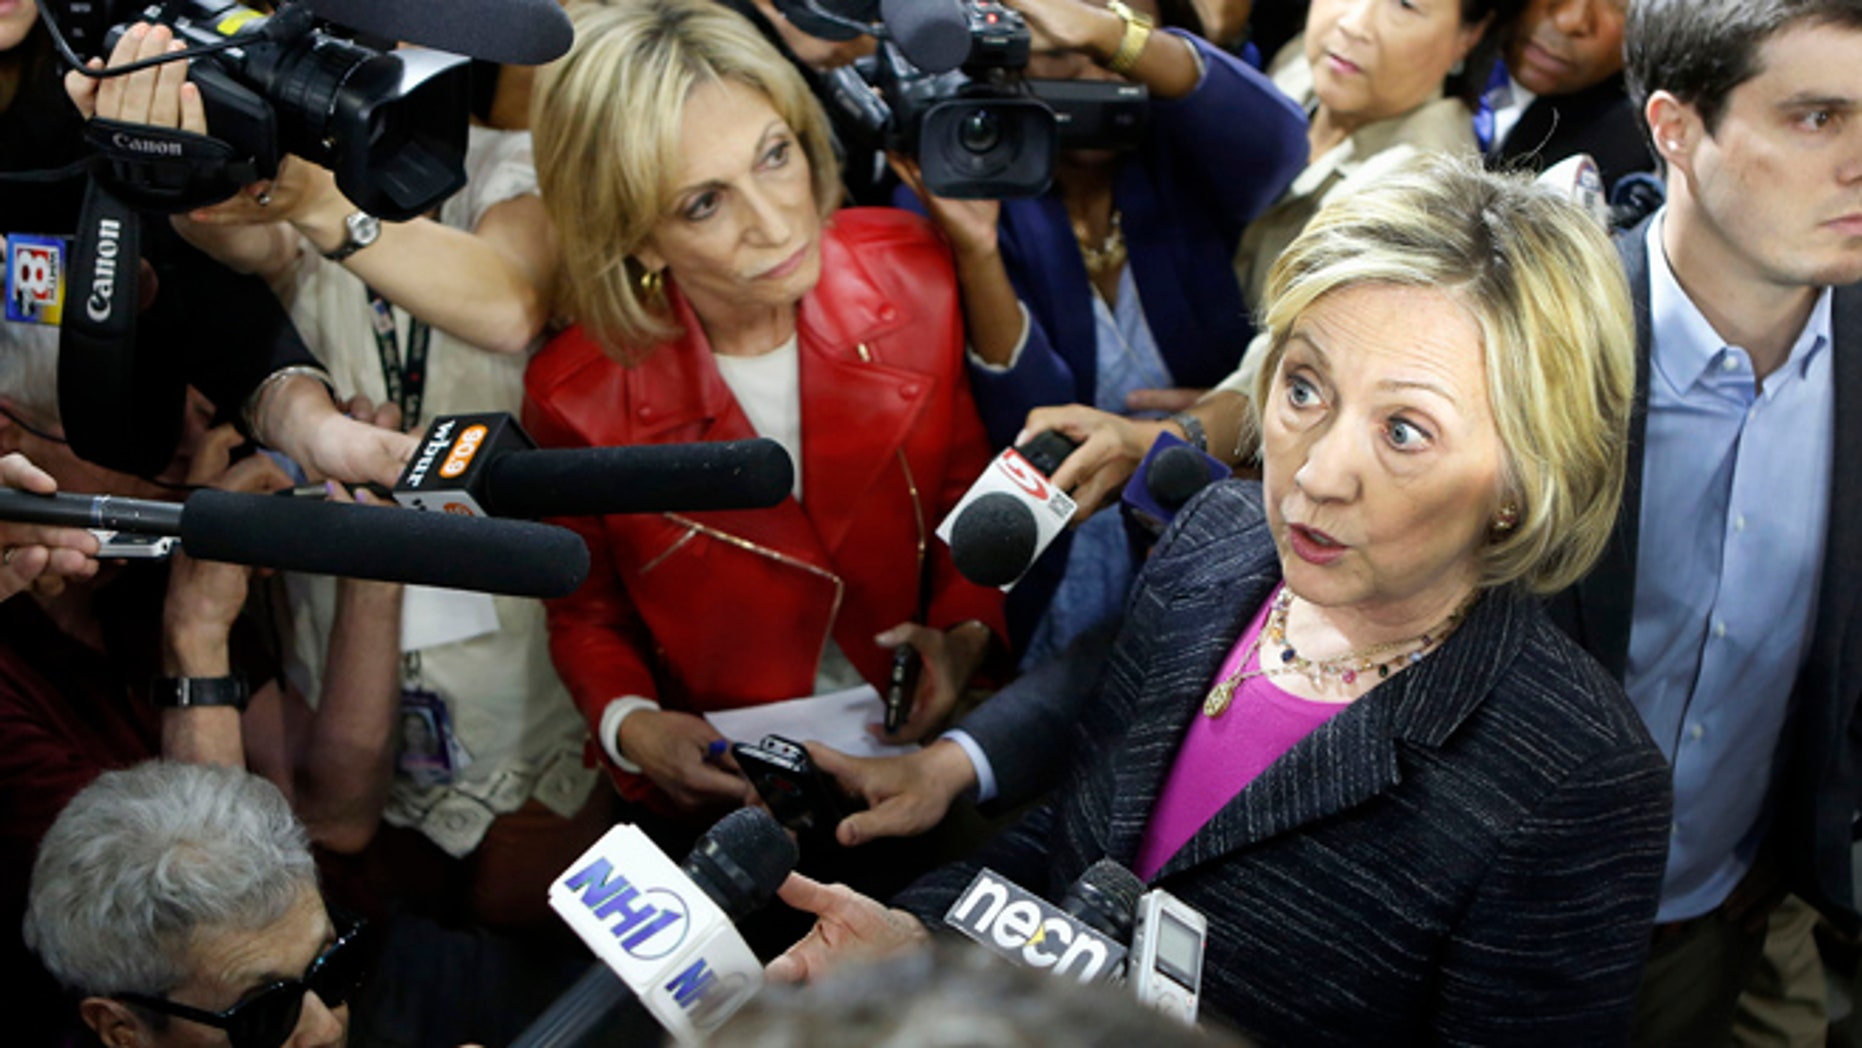 Friday, May 22, 2015: Democratic presidential candidate Hillary Rodham Clinton speaks to reporters after a round table discussion at Smuttynose Brewery, in Hampton, N.H.